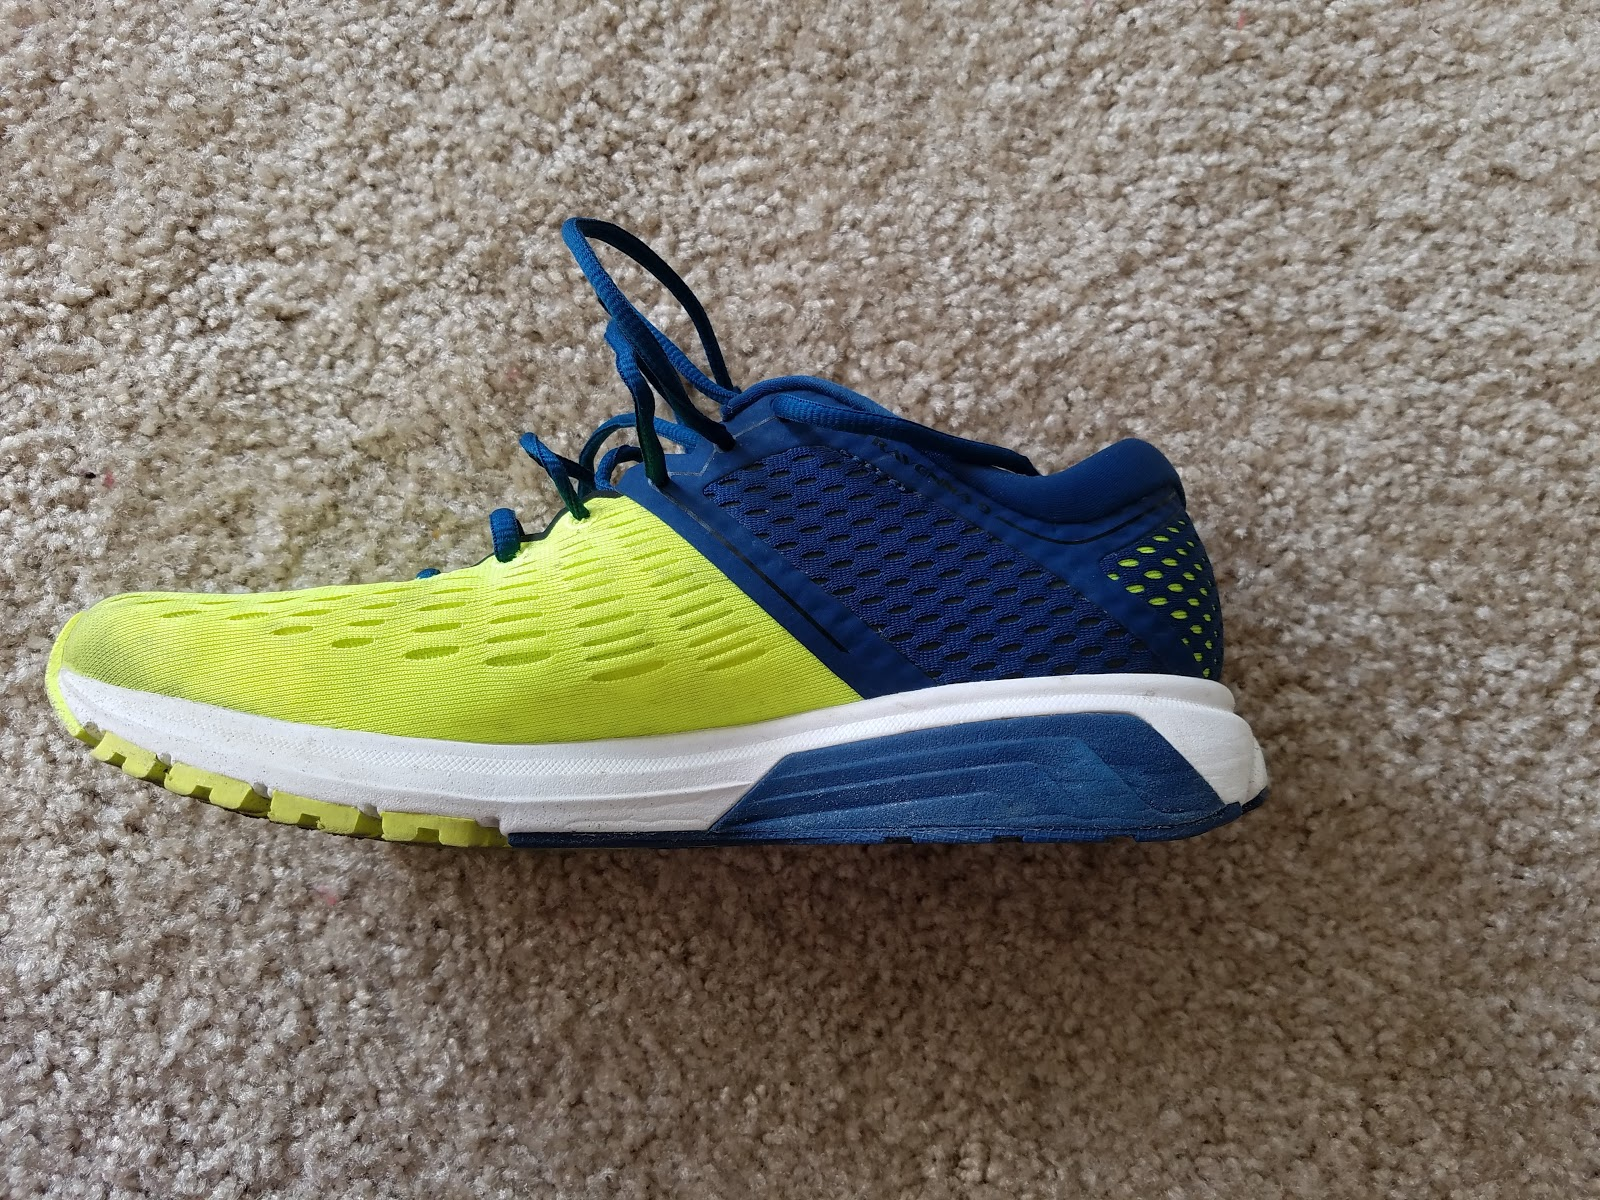 e6b76de6077 Dave  The 2018 new Brooks uppers are outstanding. They really did a good  job with the engineered mesh They rival some of the awesome stuff being put  out ...